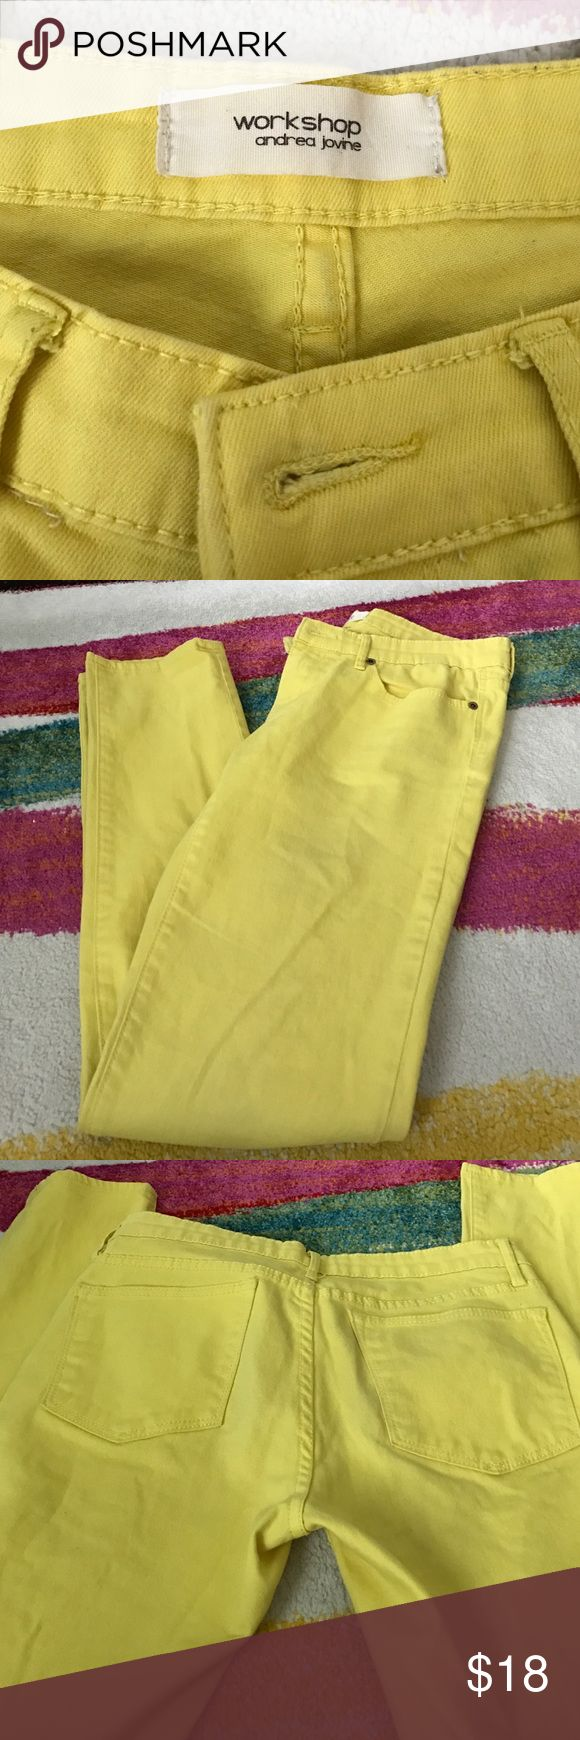 Workshop Andrea jovine yellow skinny jeans size 8 Cotton spandex stretchy sunny yellow jeans workshop  Pants Skinny